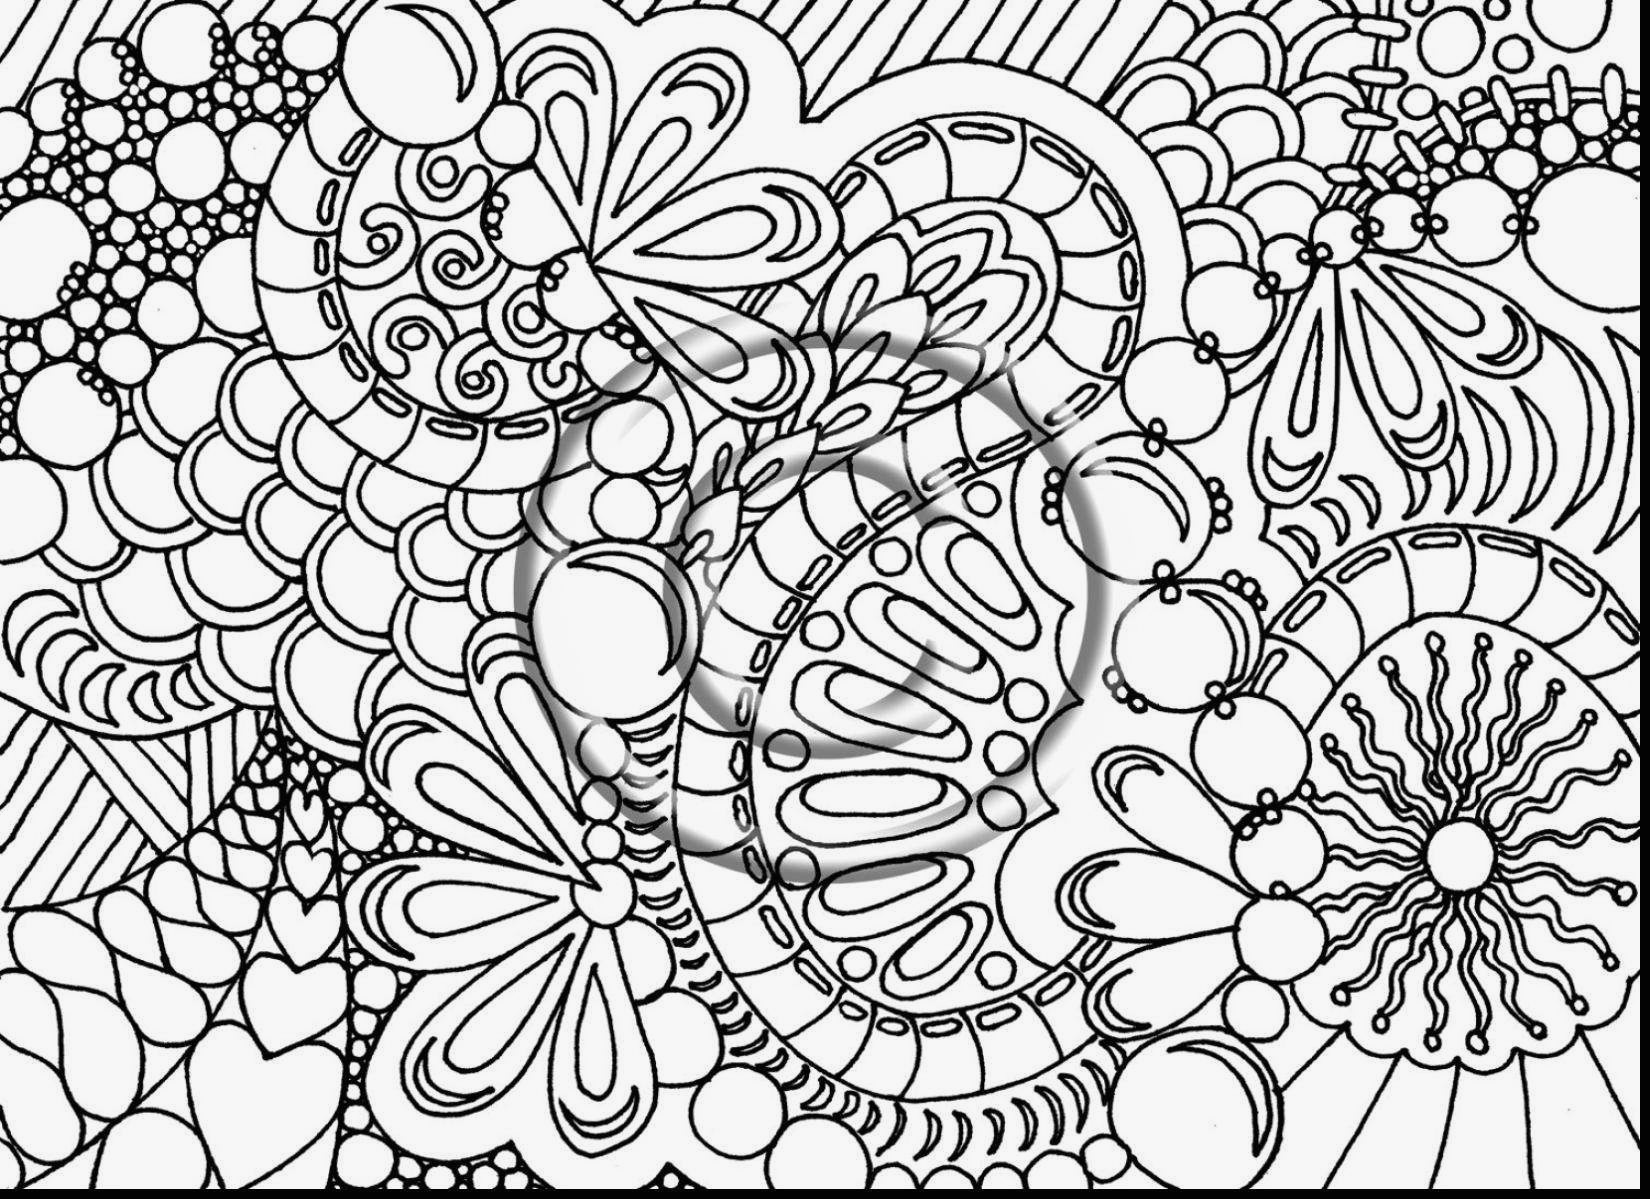 Christmas Coloring Sheets Pdf Free With Animal Pages For Adults Awesome